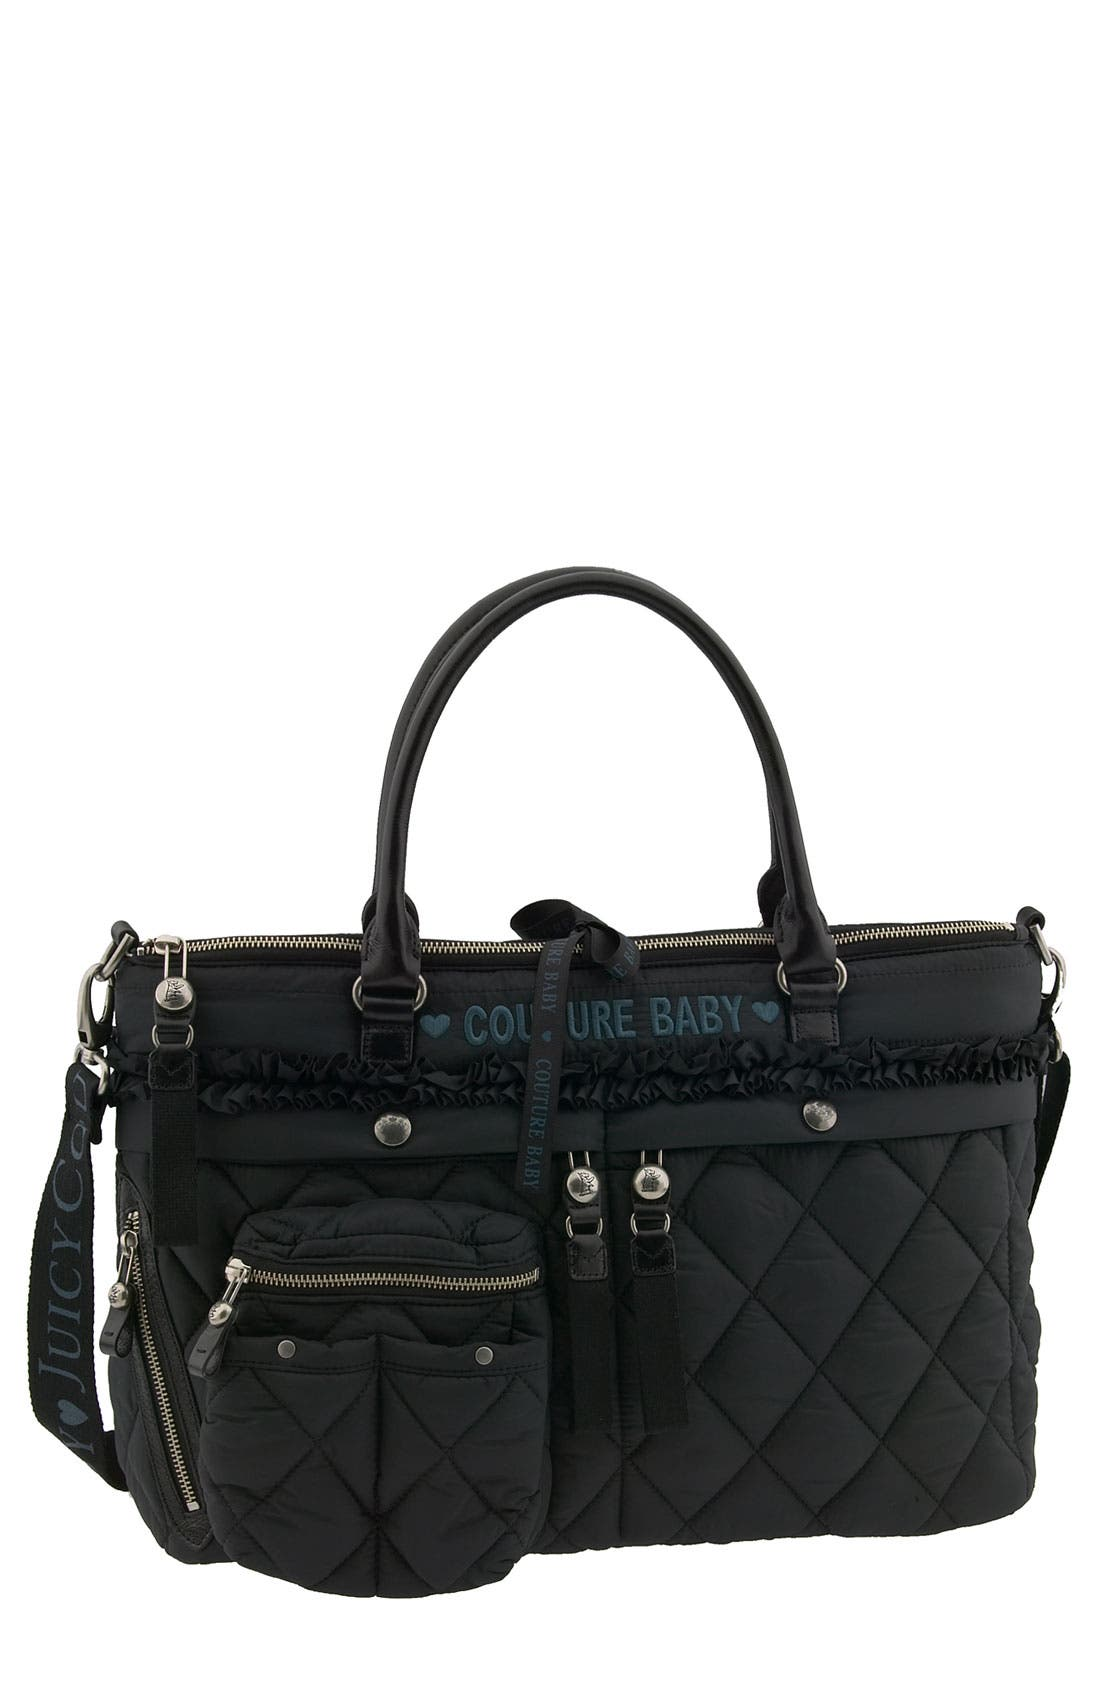 Image Result For Juicy Couture Baby Diaper Bag